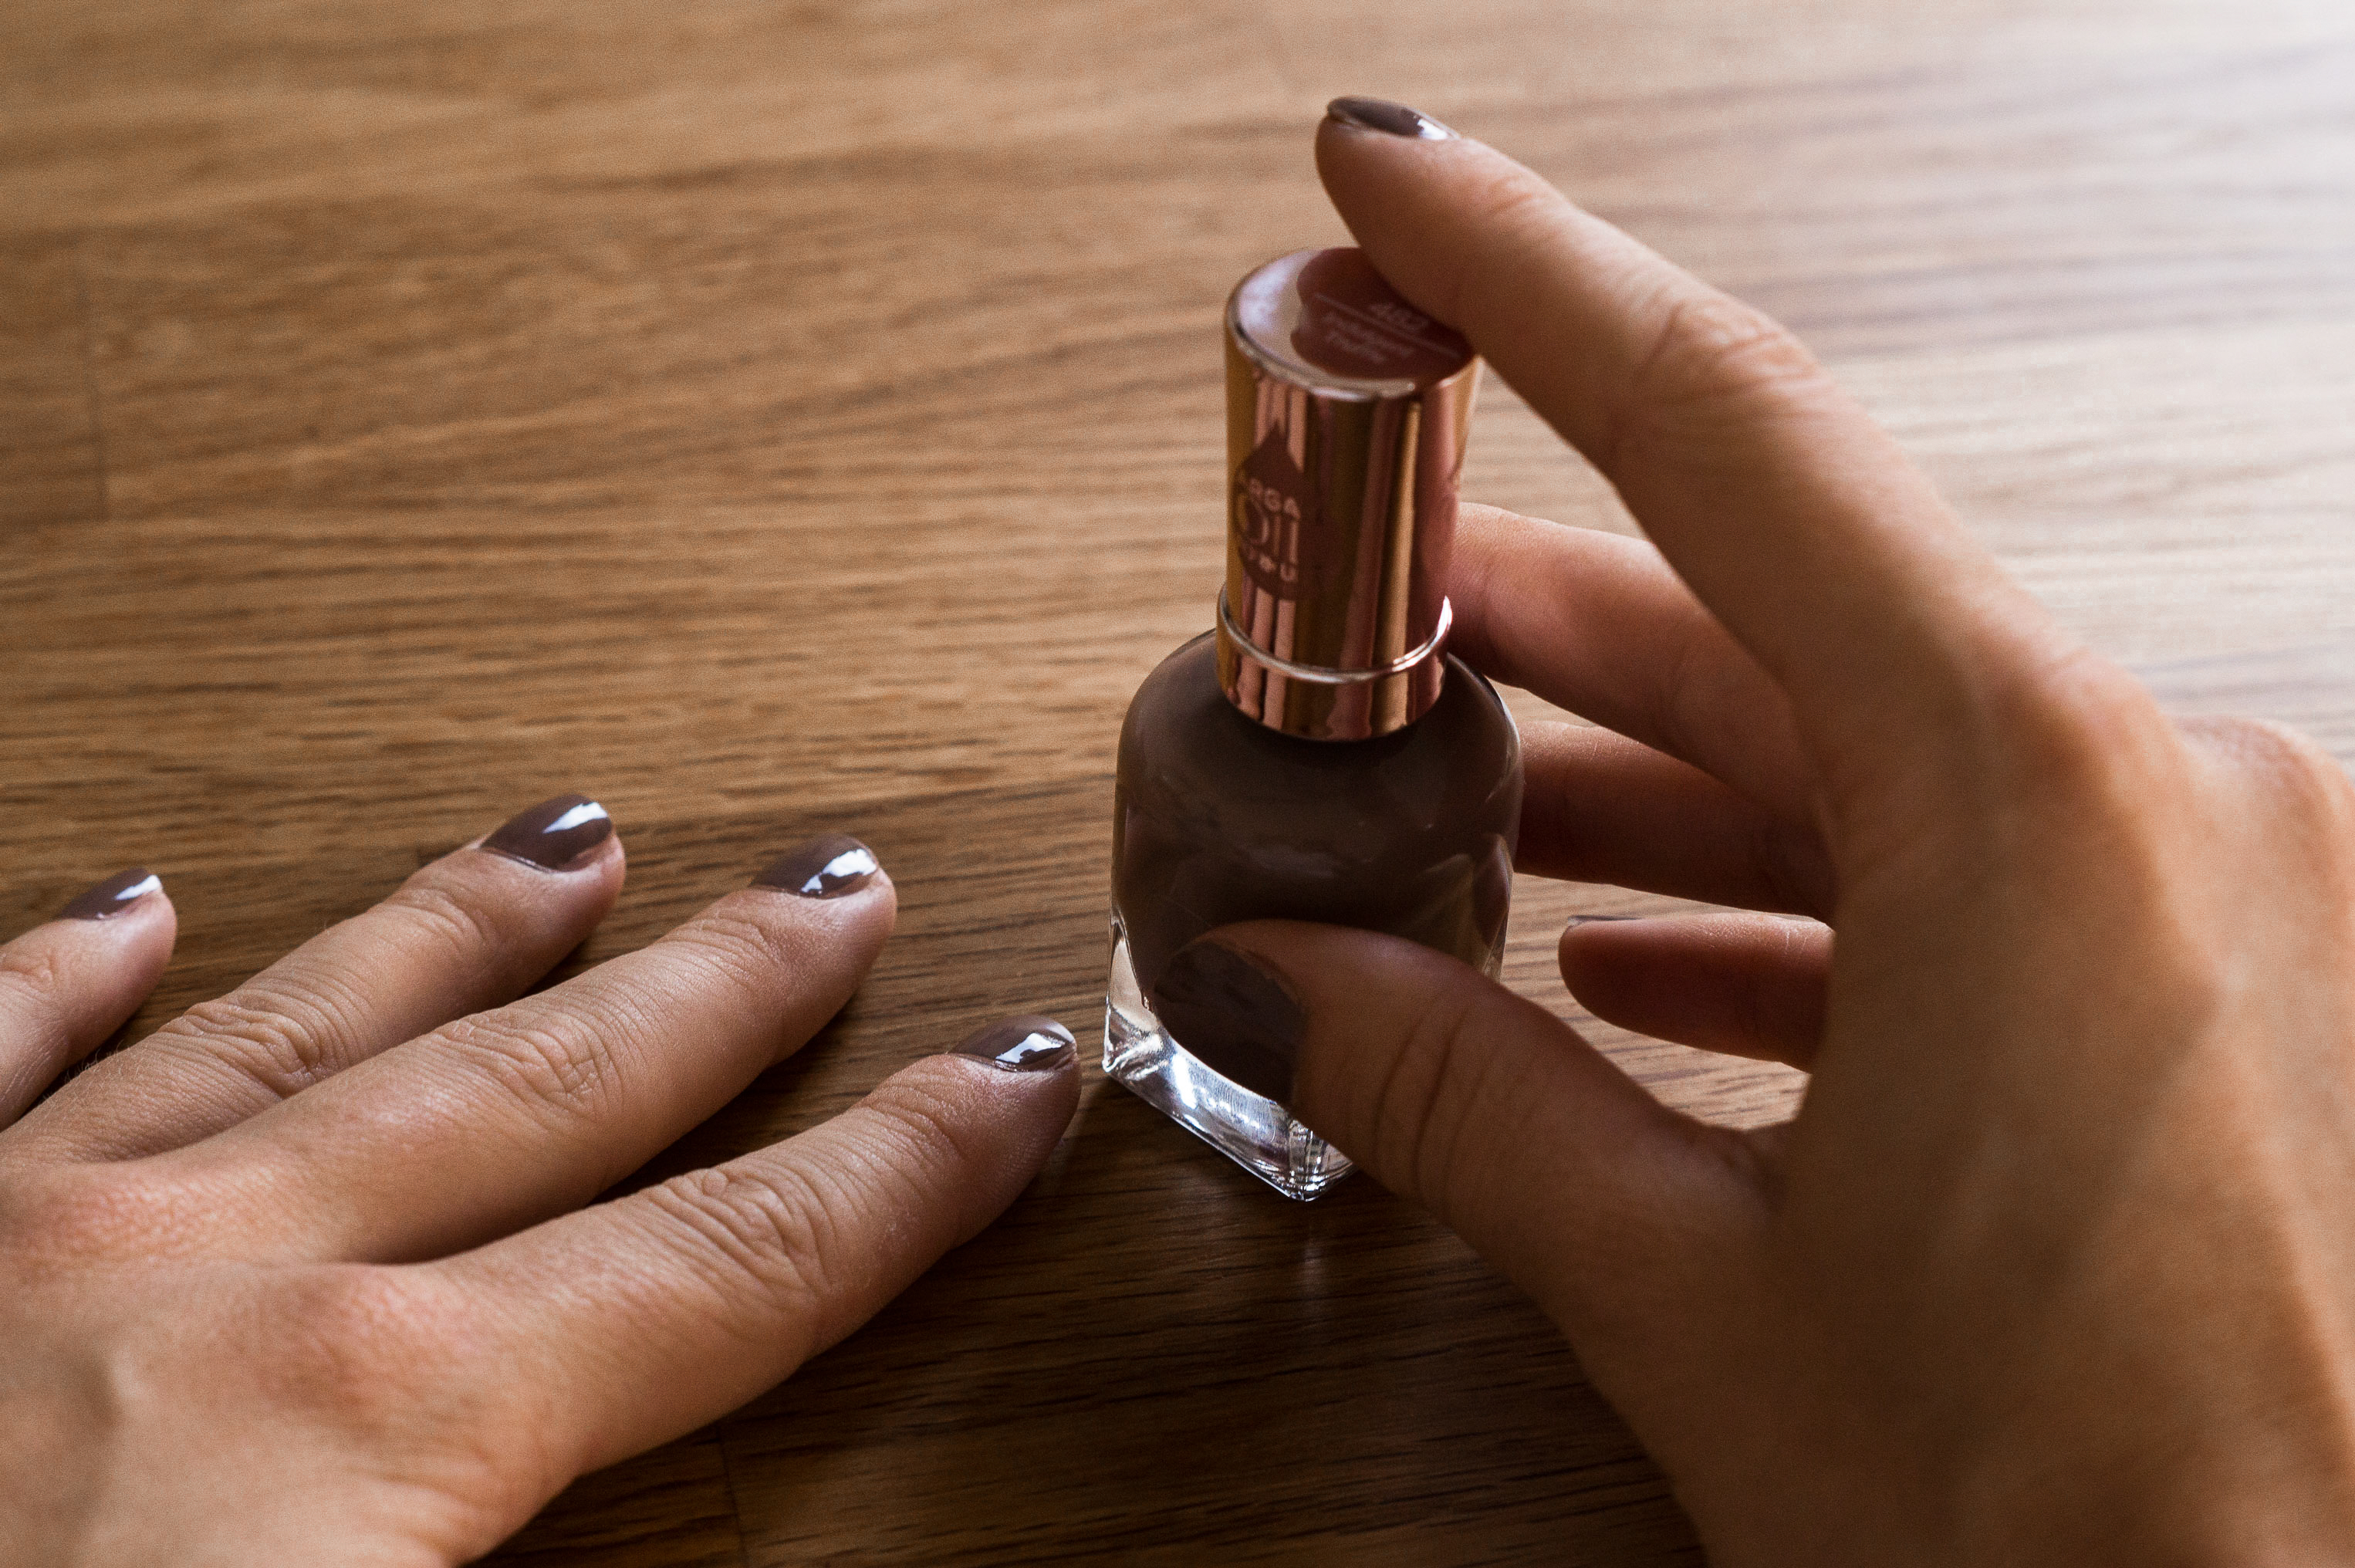 Sally Hansen Color Therapy Nude Nailpolish Better Than Bare Nails Nagellack Nudeton Nagelpflege Beatly Review Sariety Modeblog_10